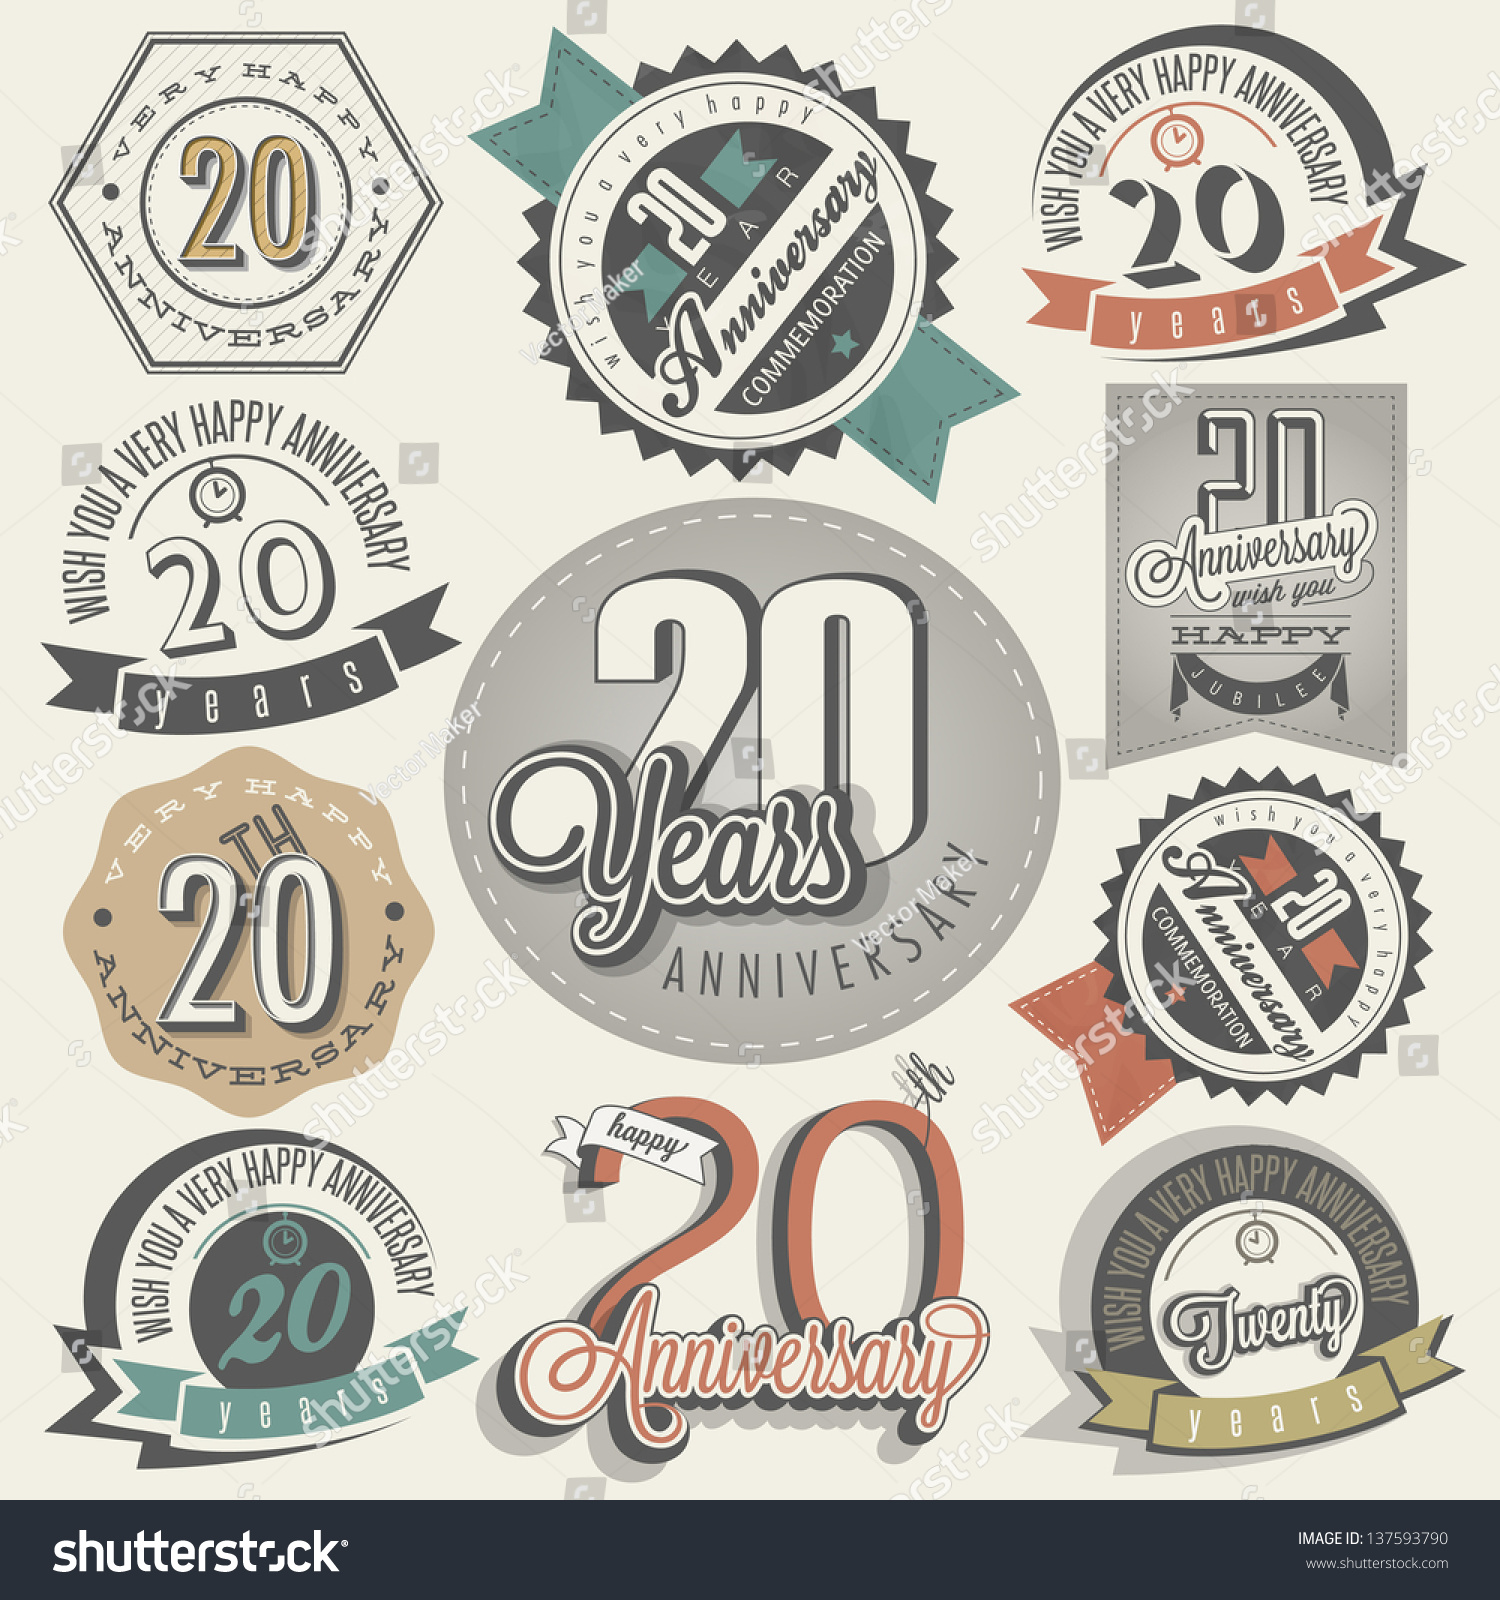 Vintage 20 Anniversary Collection Twenty Anniversary Design In Retro Style Vintage Labels For Anniversary